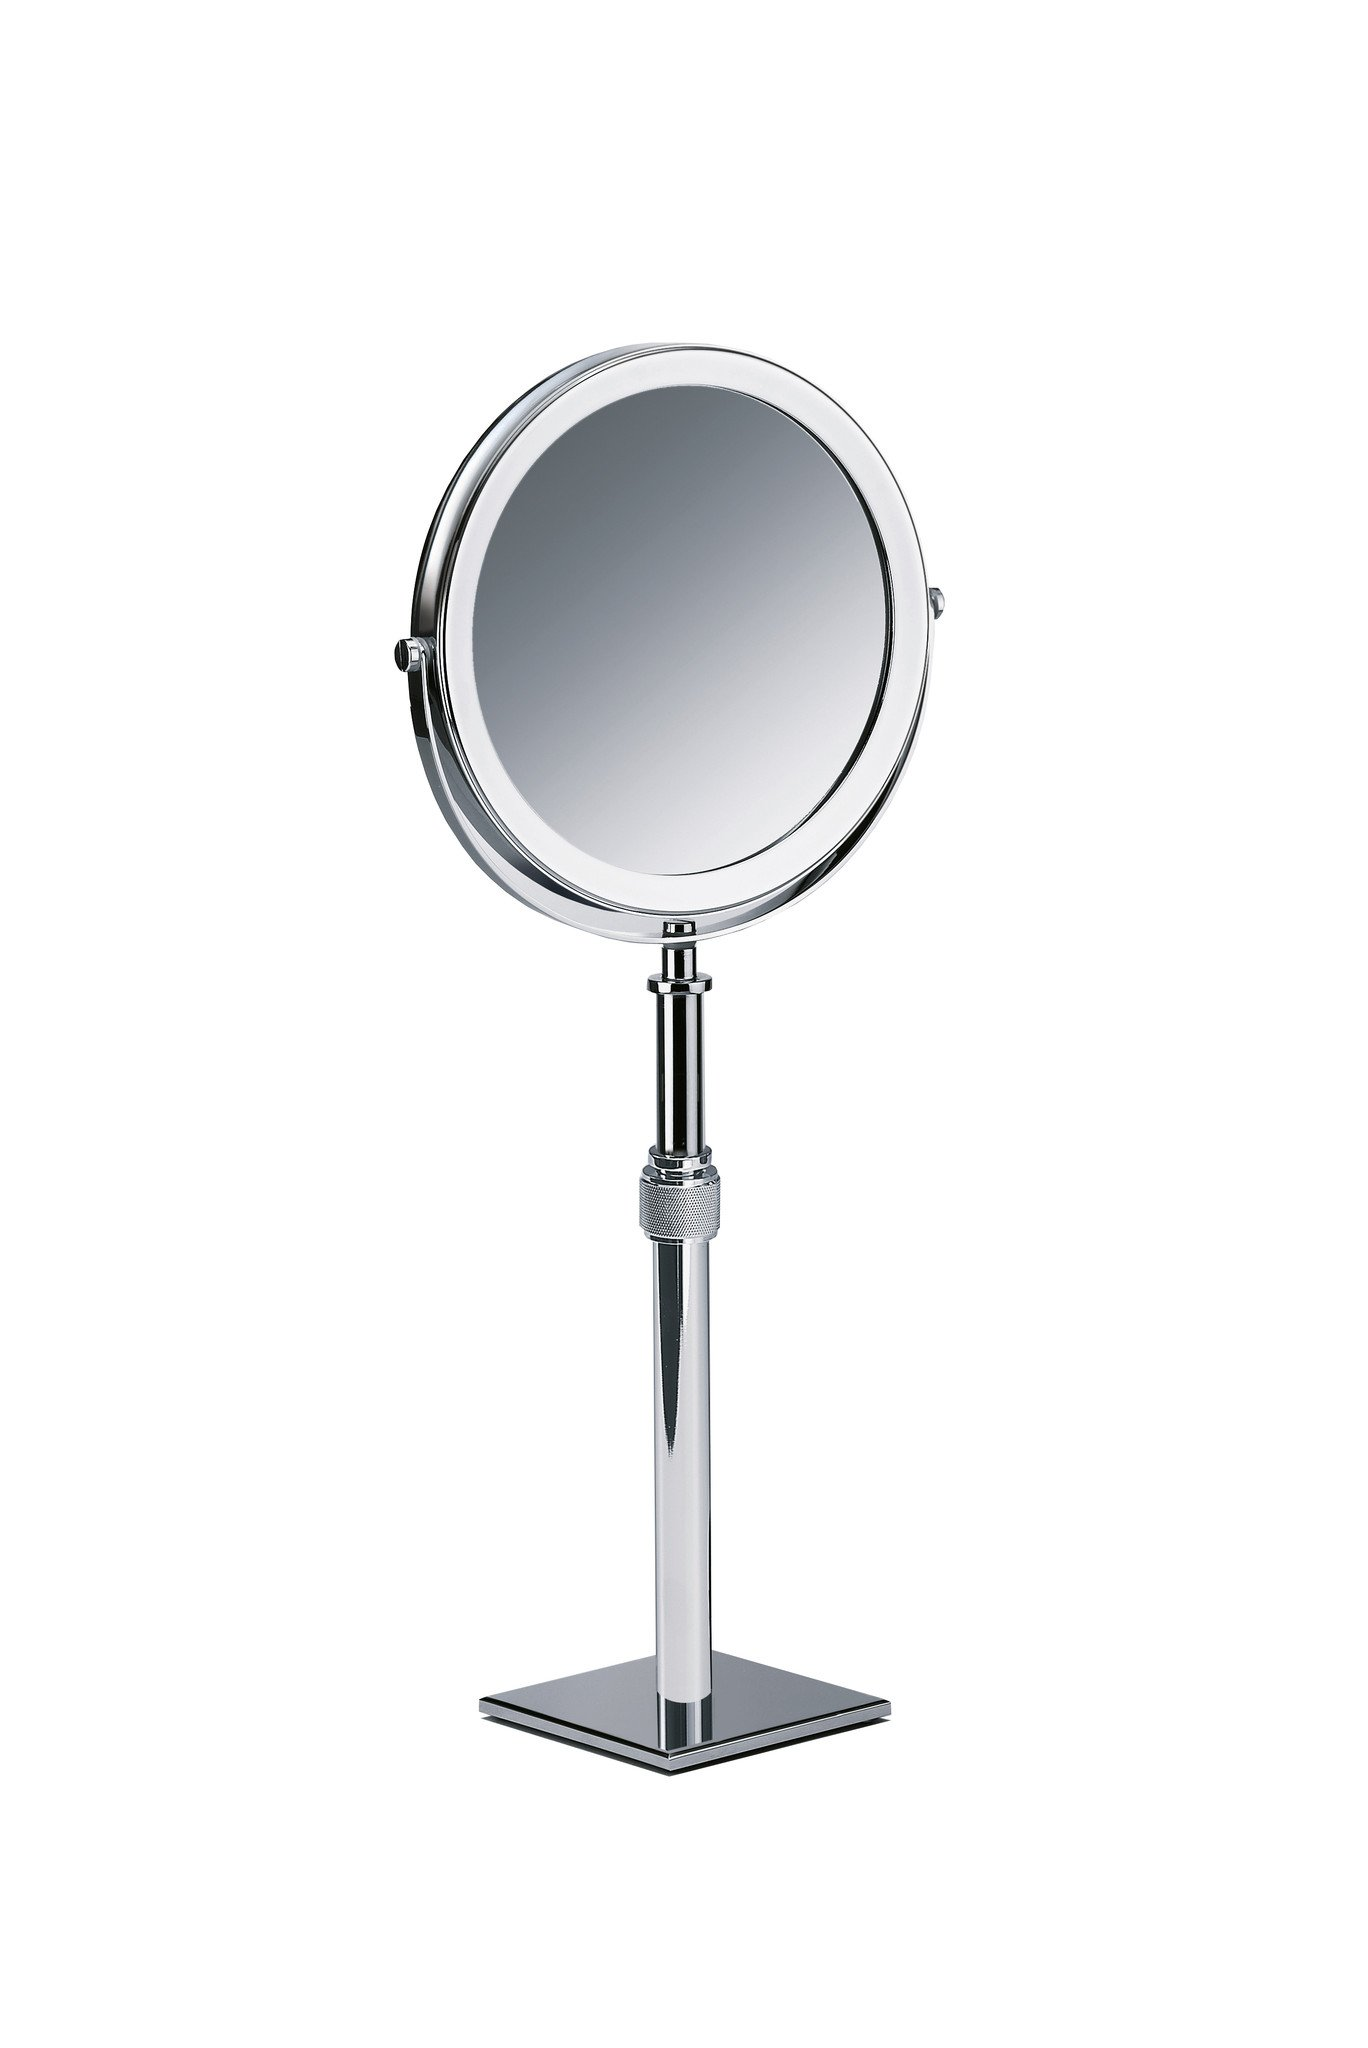 DWBA Table Height Adjustable Cosmetic Makeup 5x Magnifying Mirror (Polished Chrome)